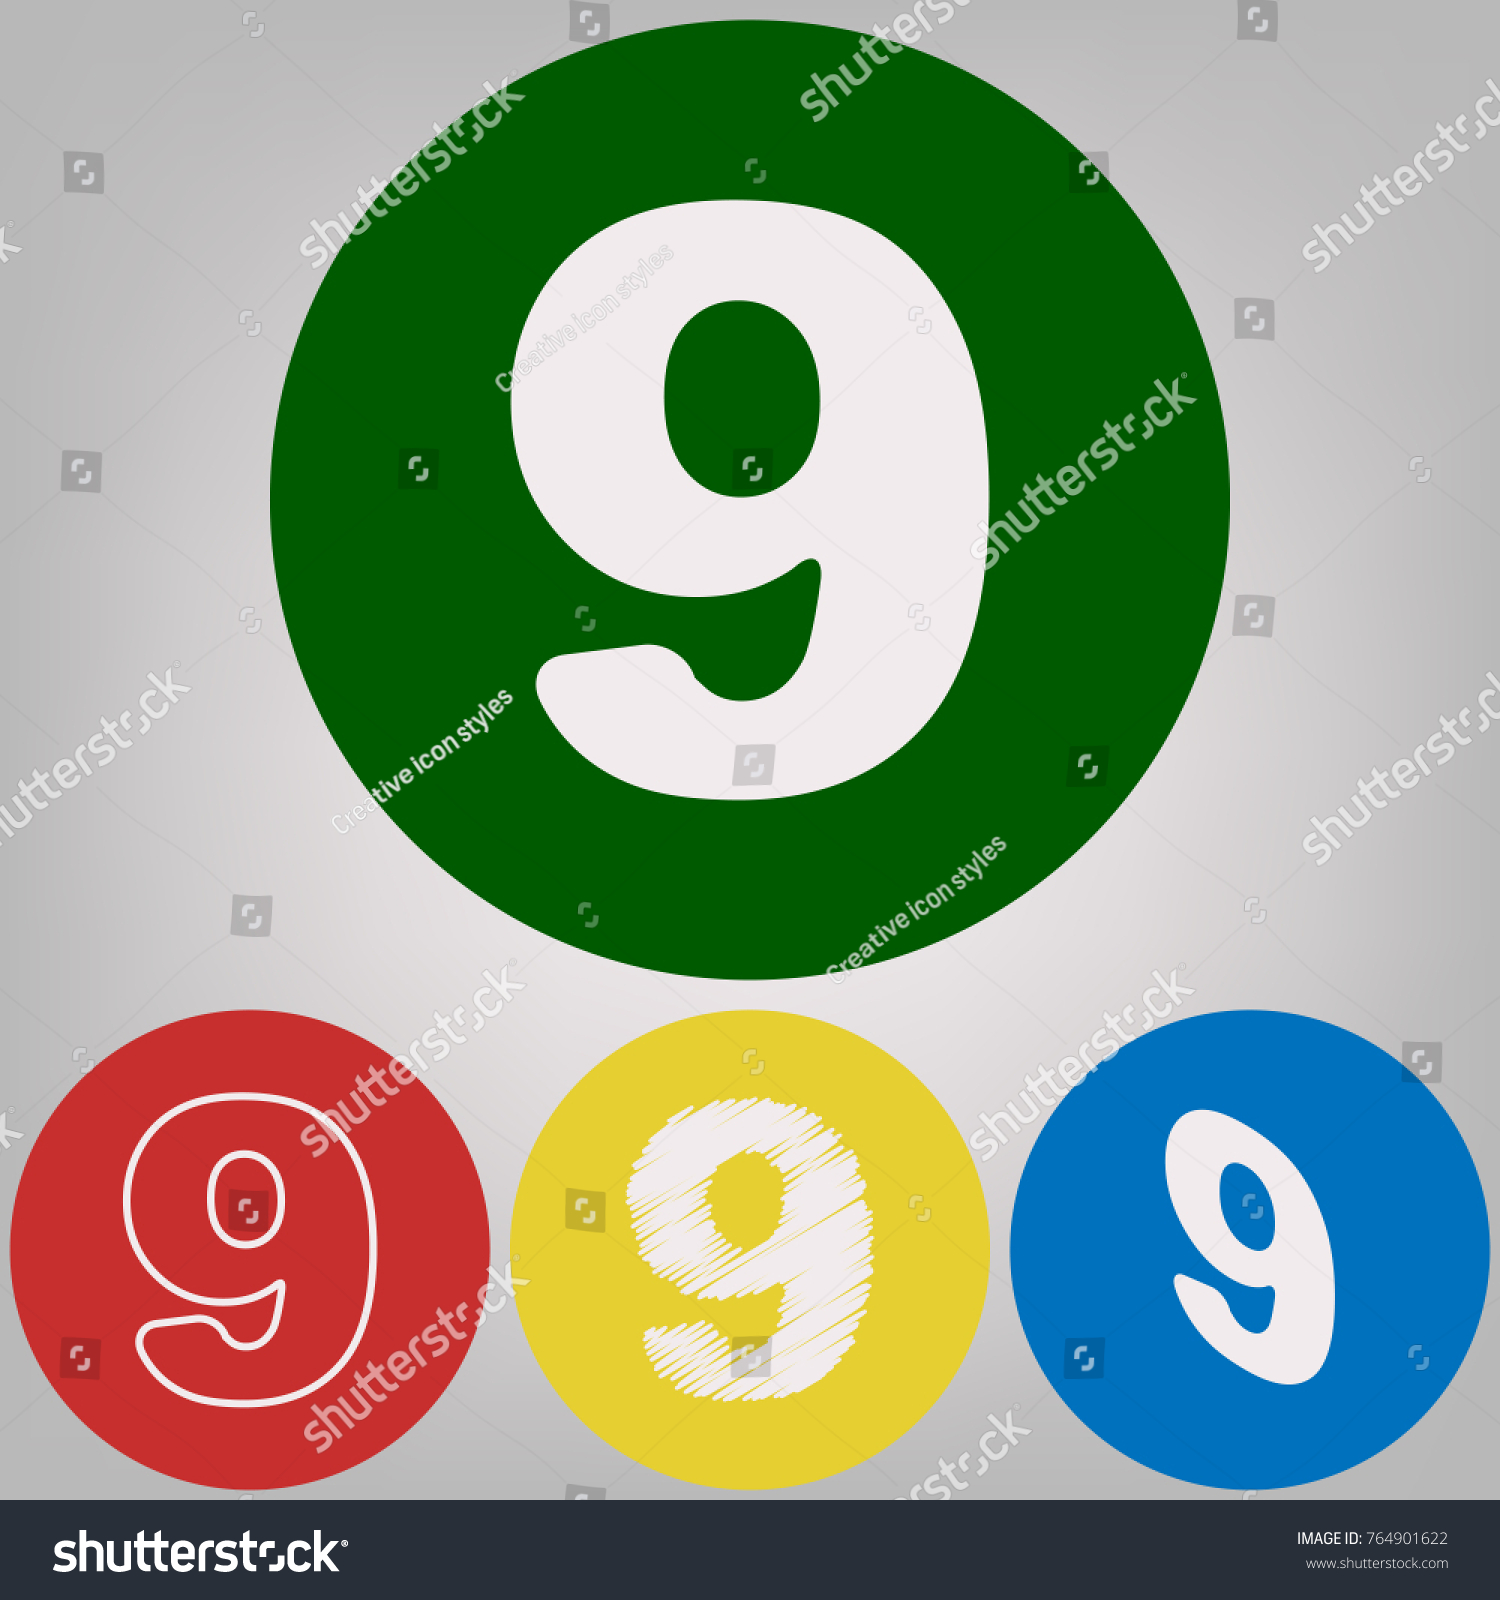 Number 9 Sign Design Template Element Stock Vector 764901622 ...